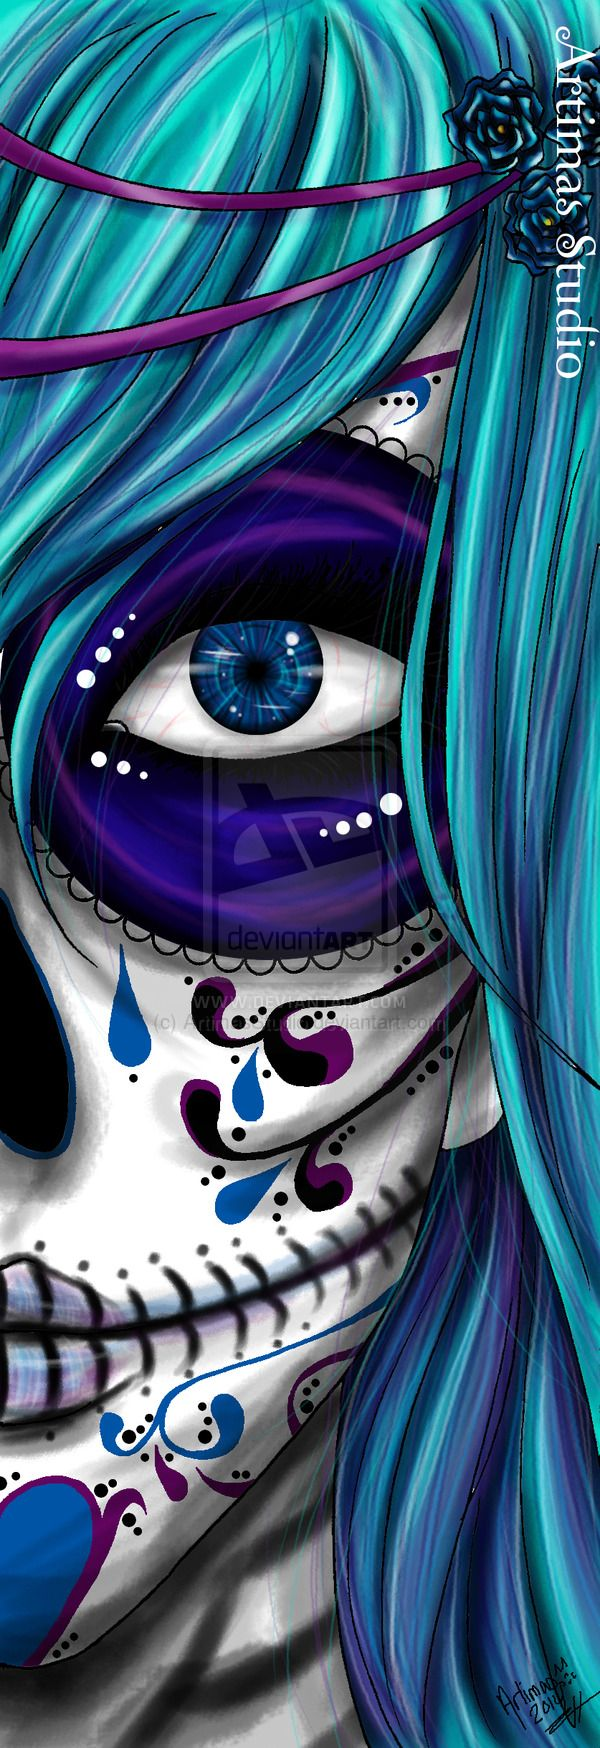 Blue Death by ArtimasStudio.deviantart.com on @deviantART